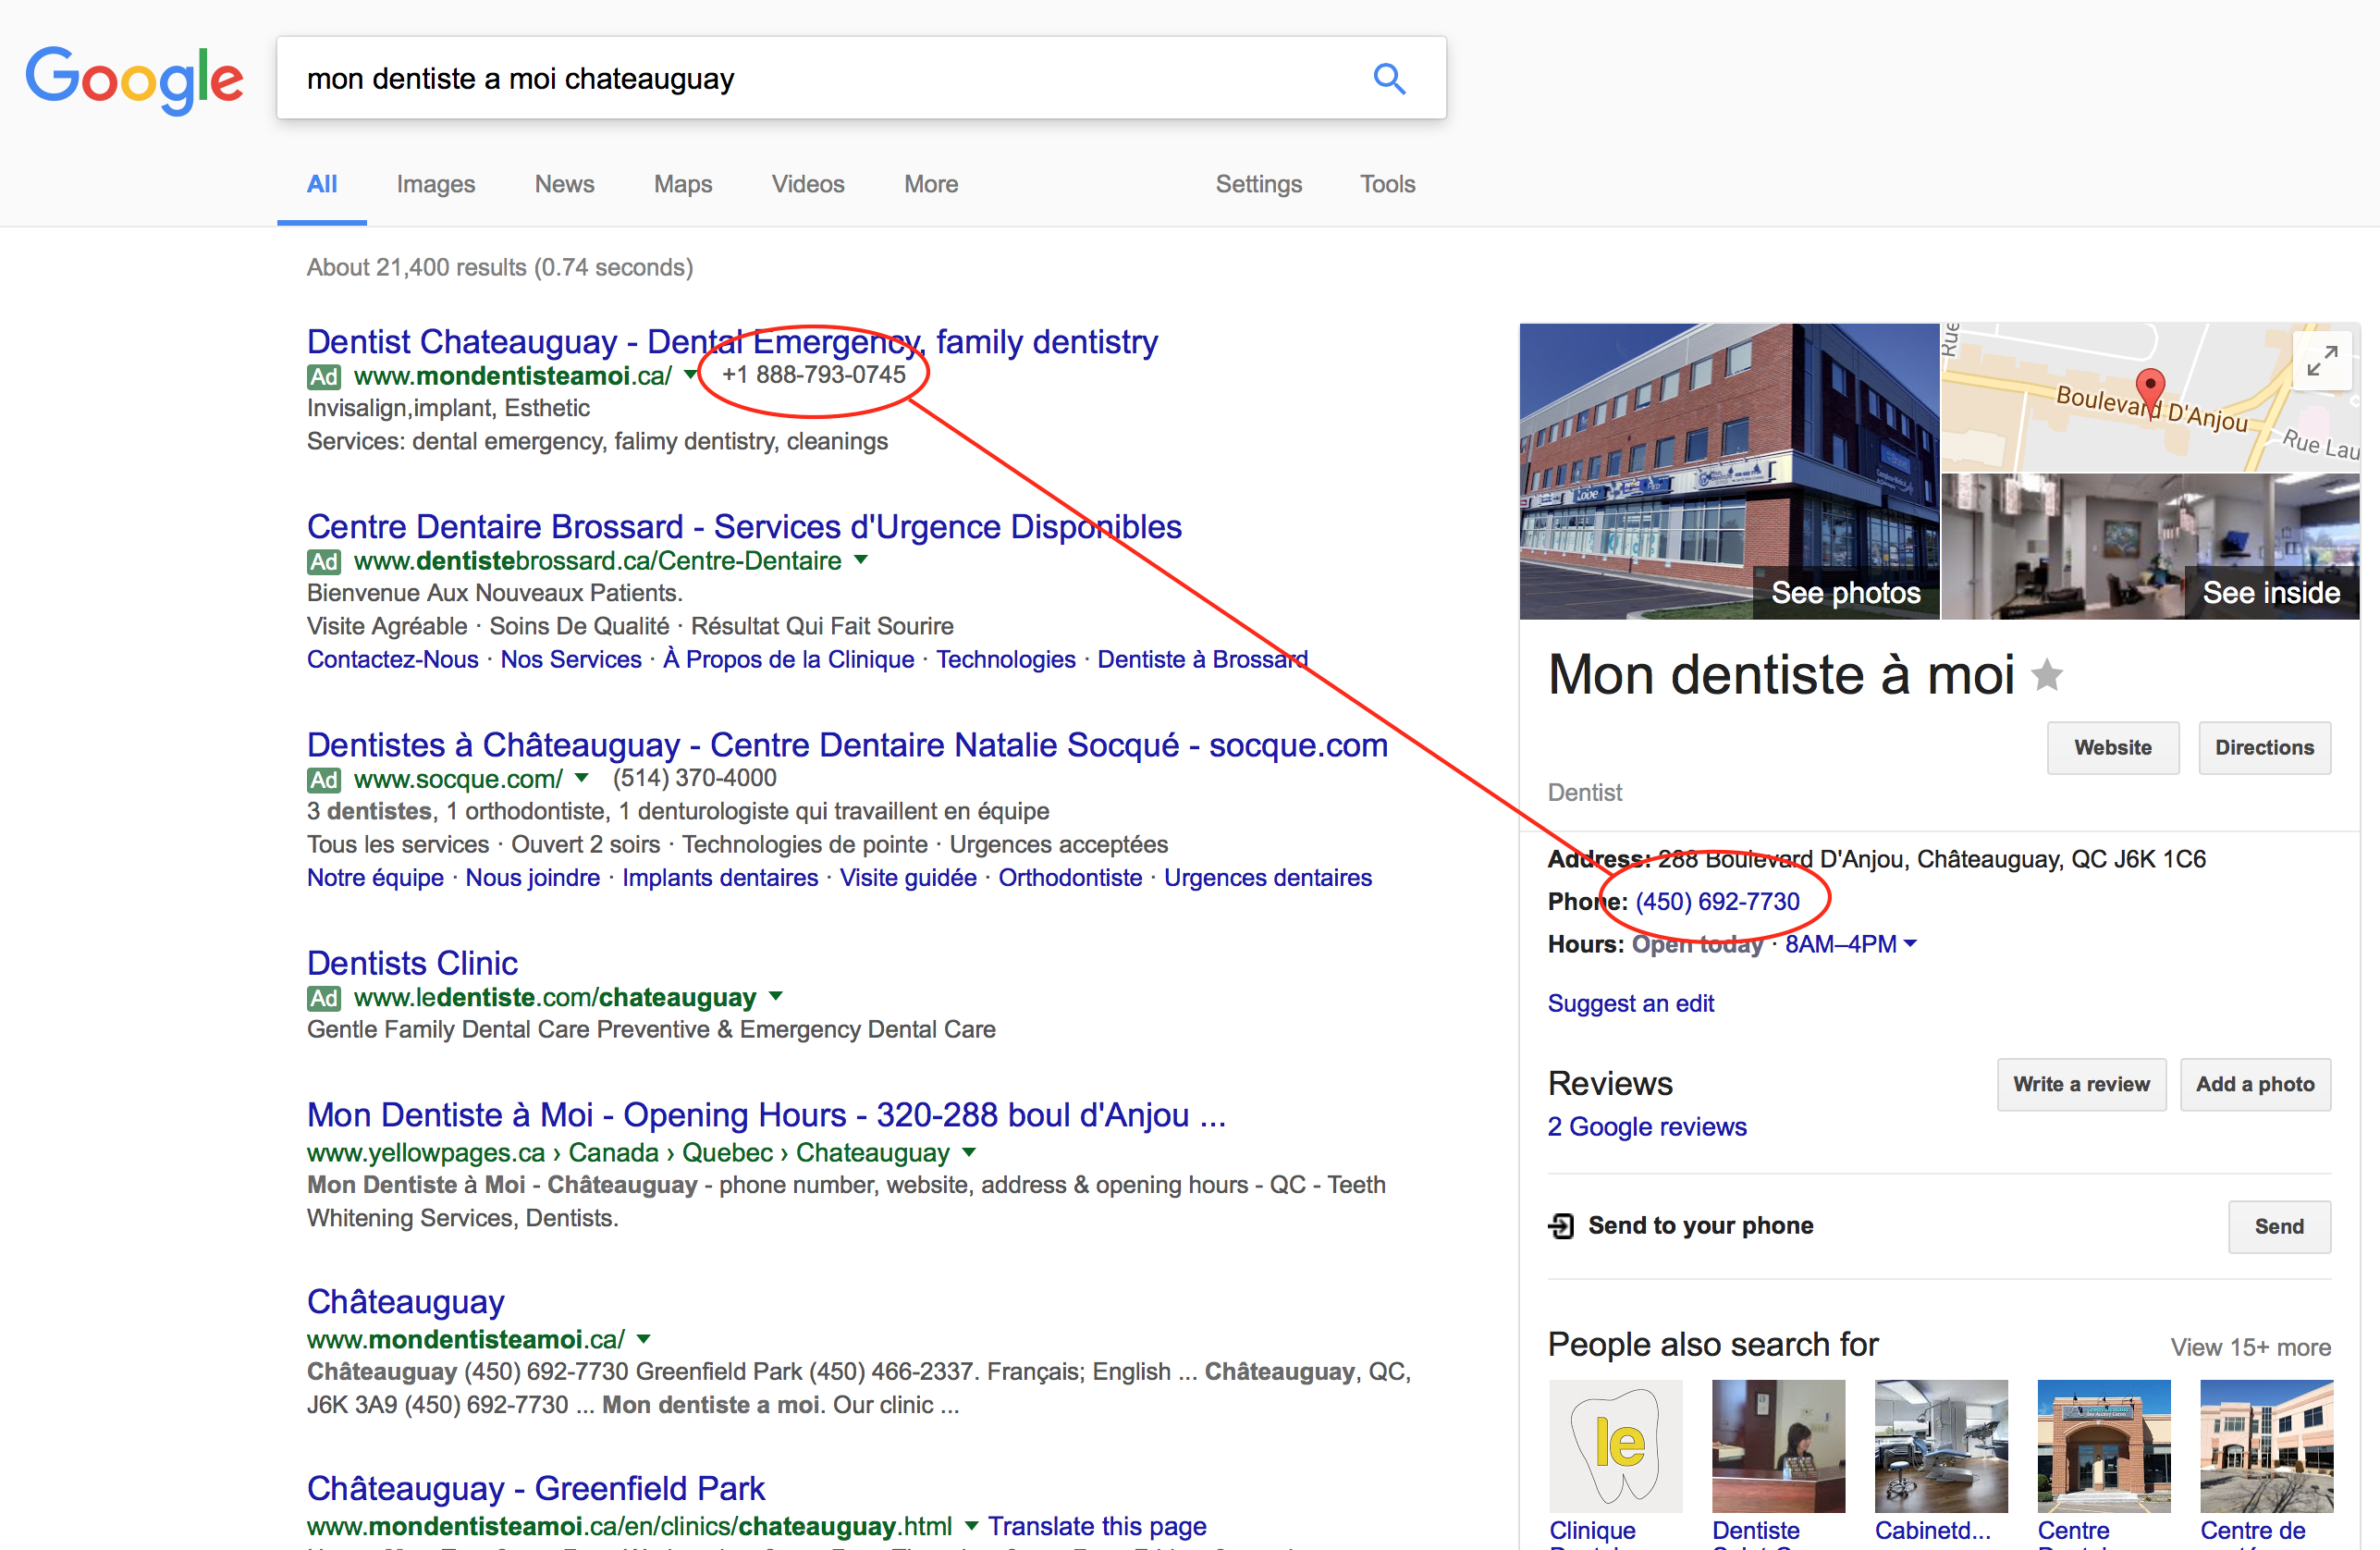 Call Extensions and Google My Business number inconsistencies